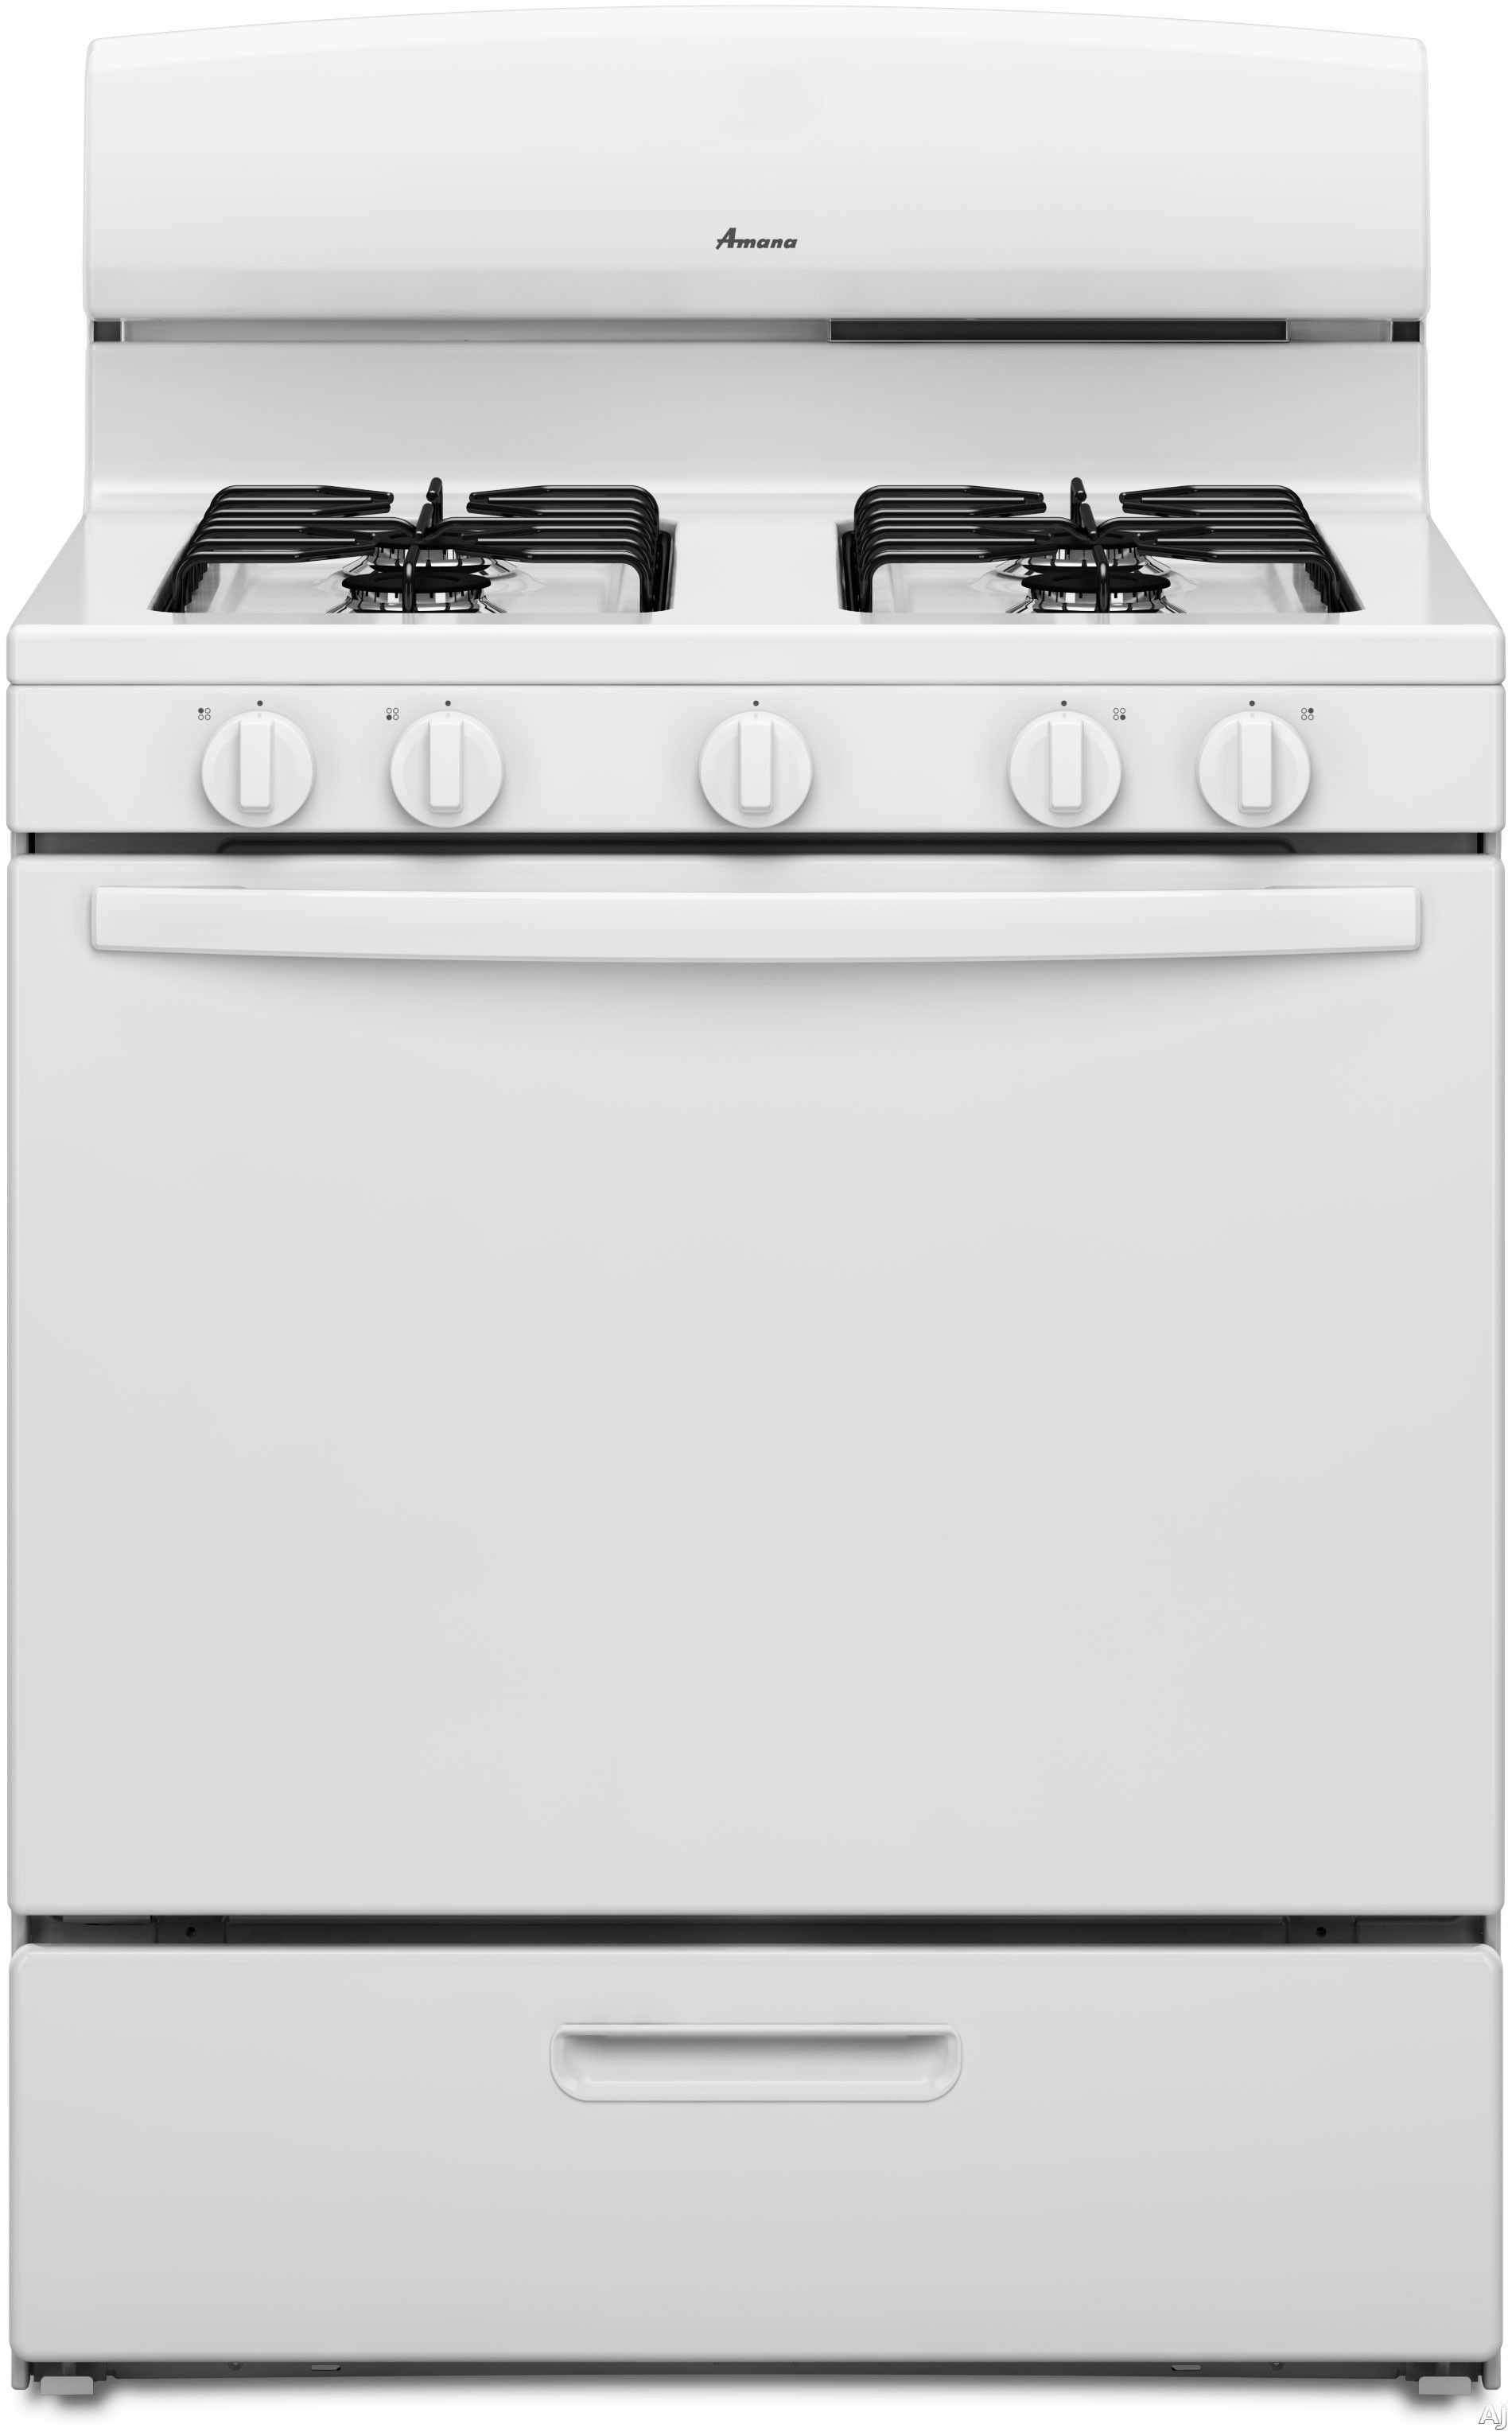 amana agr4230ba 30 freestanding gas range with 4 sealed burners rh pinterest com Amana Washer Amana Appliances Washers